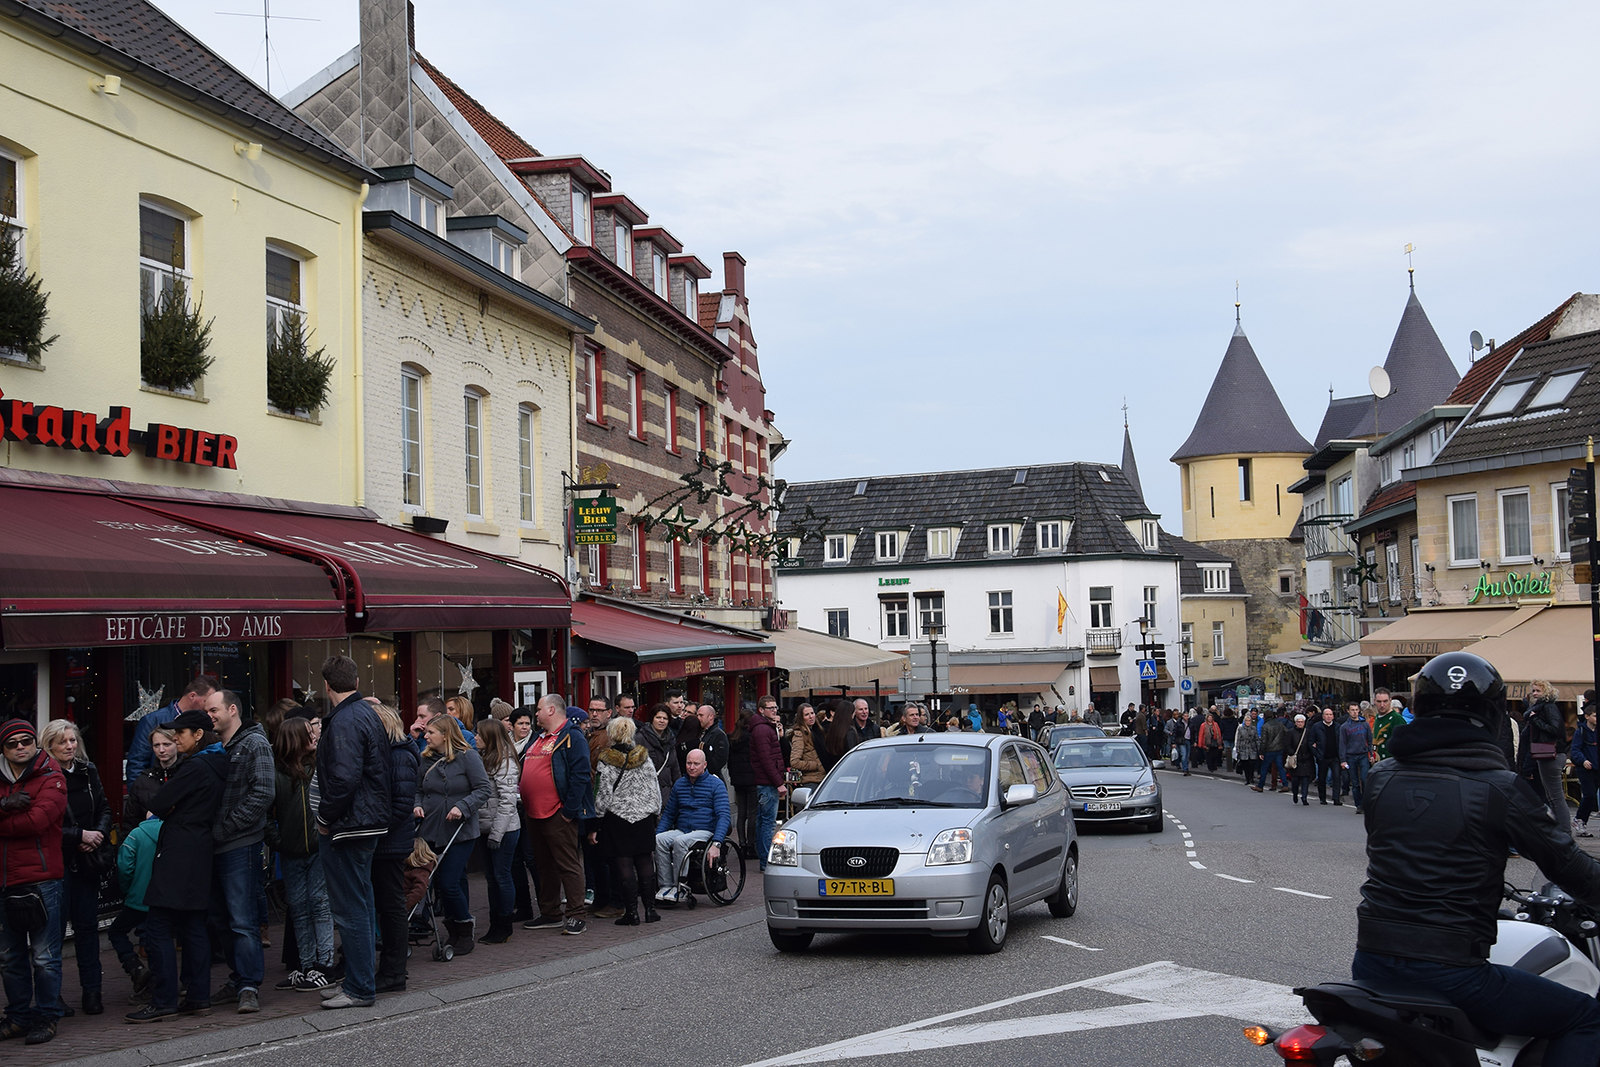 Valkenburg's line to enter the market